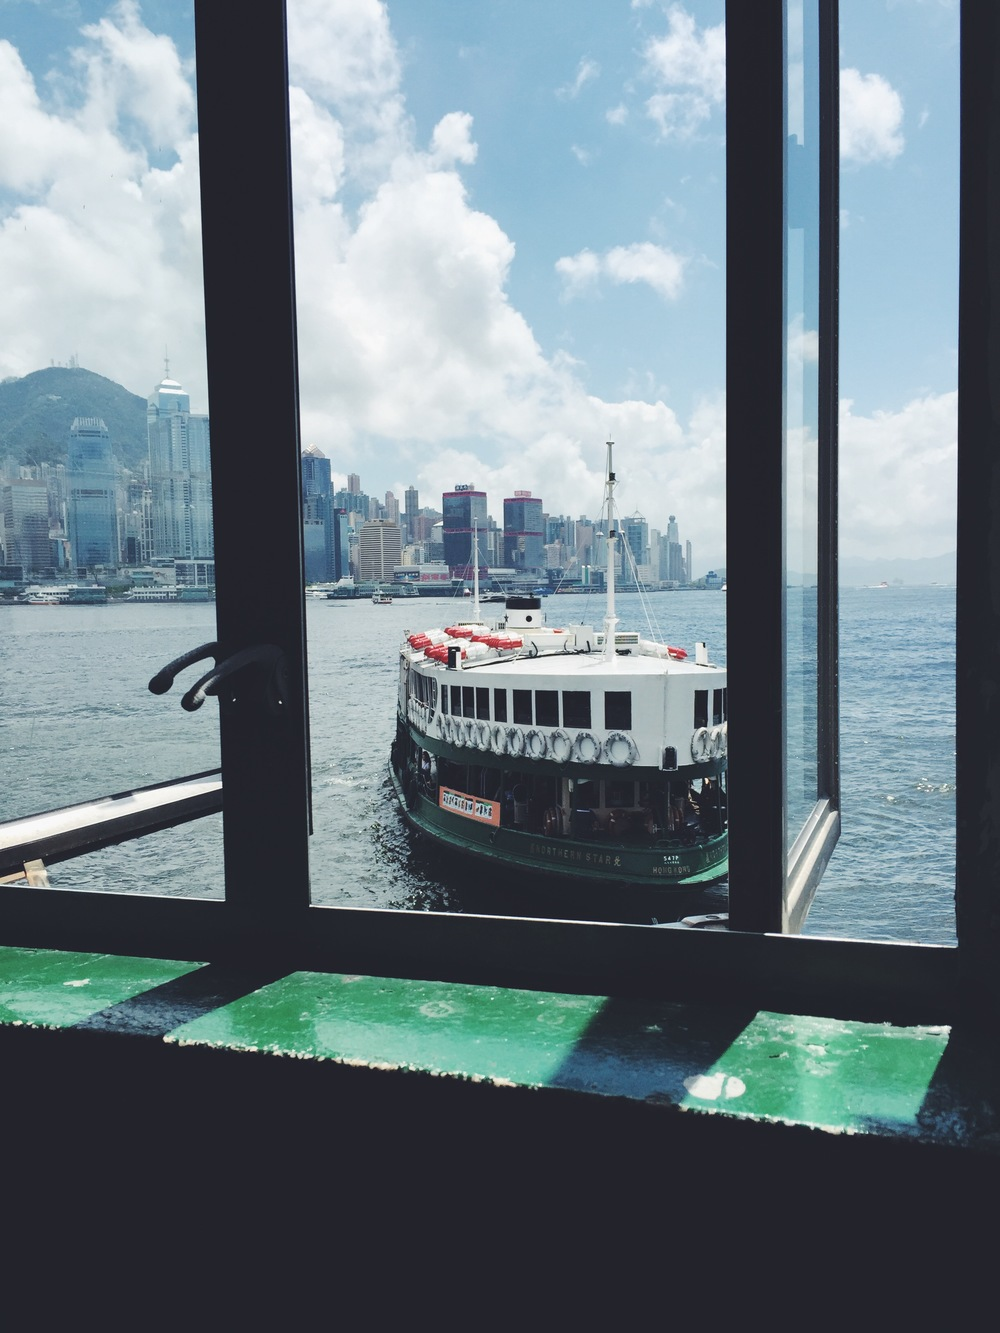 Waiting to board the Star Ferry.